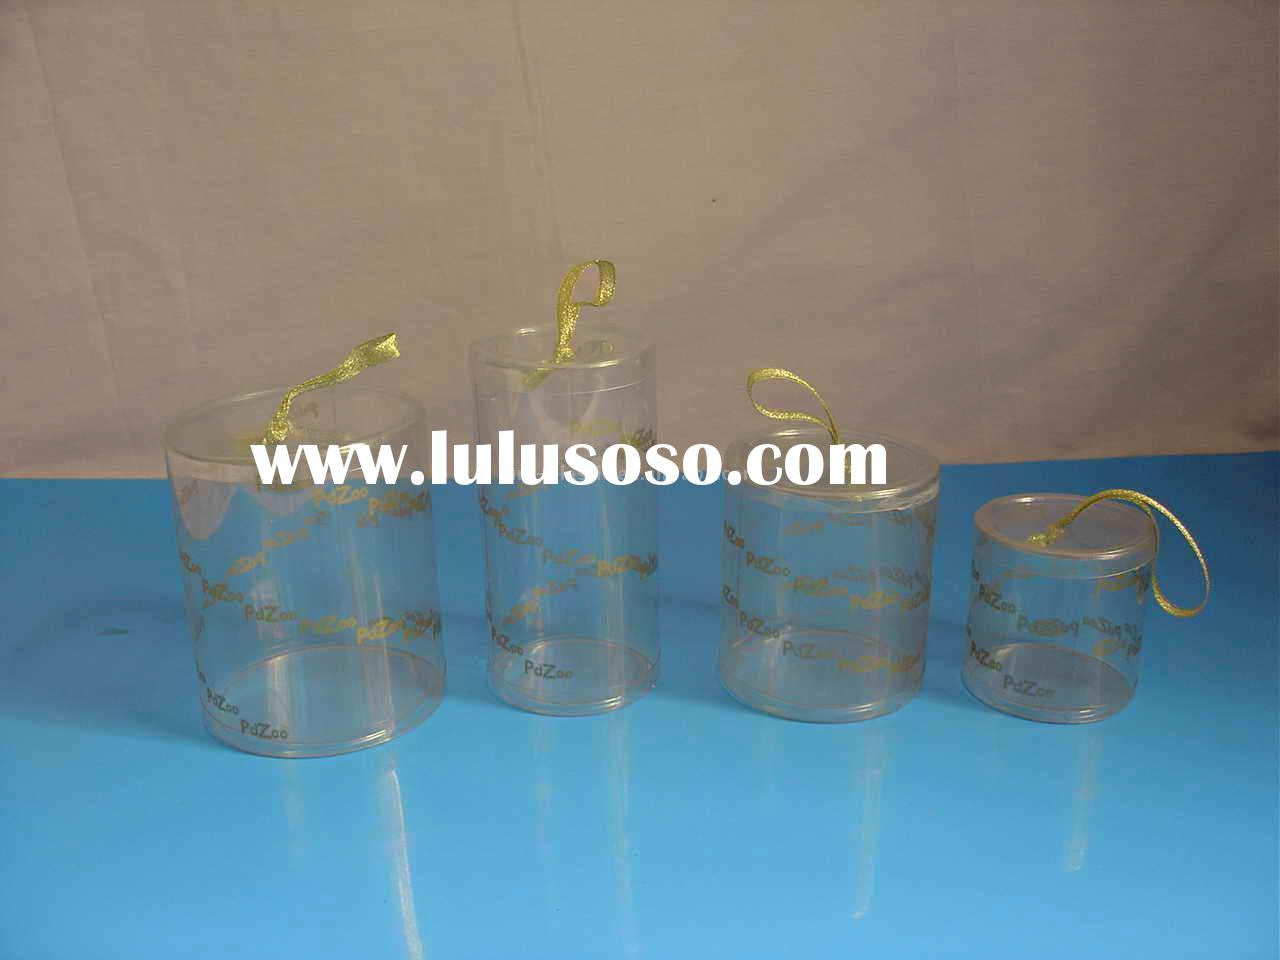 PVC Tubes,Clear Plastic Tubes,PET Tubes,Cylinders